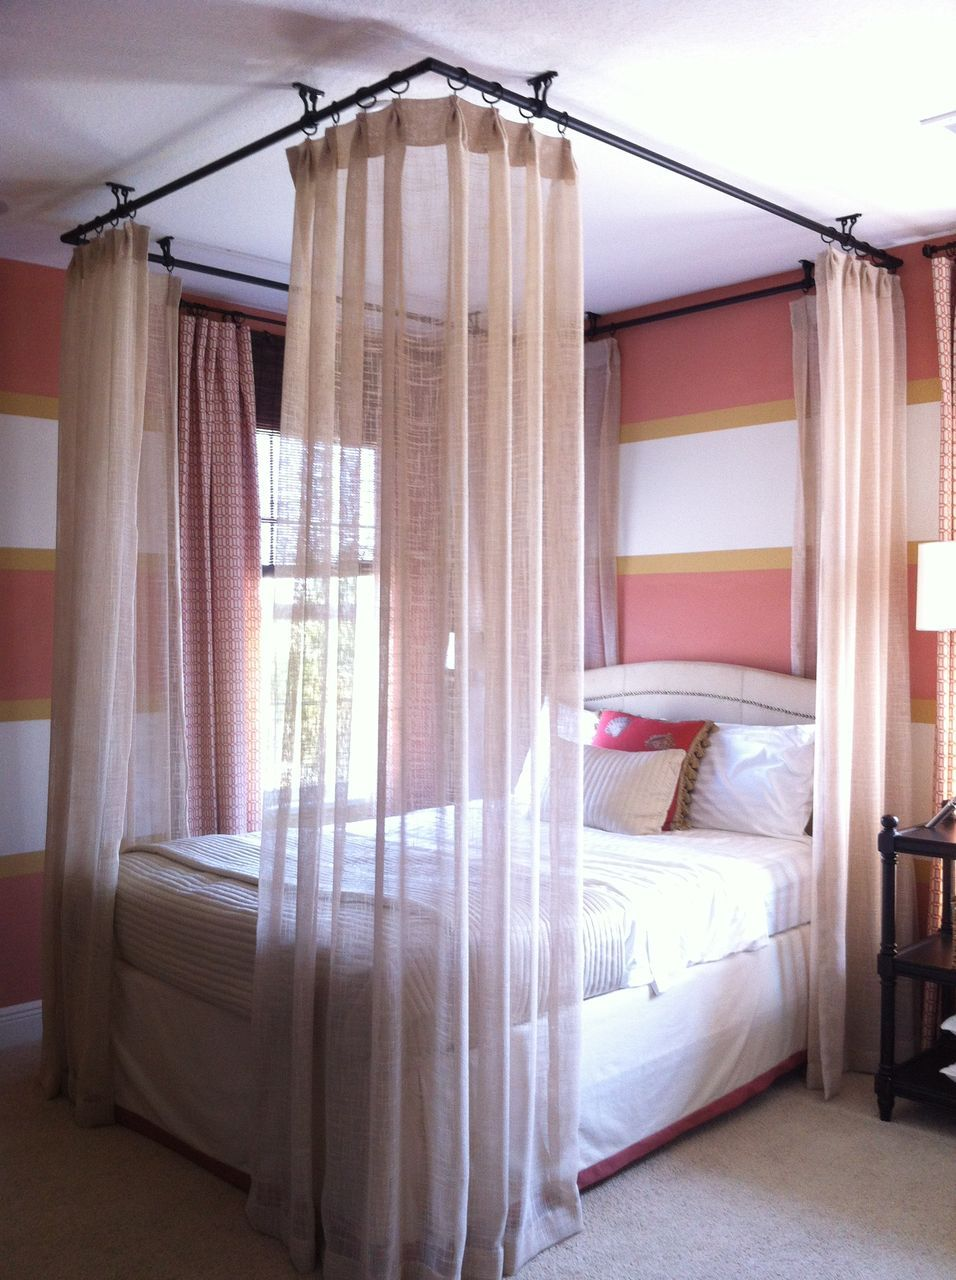 Ceiling Hung Curtains Around Bed Beautiful Bedroom Designs